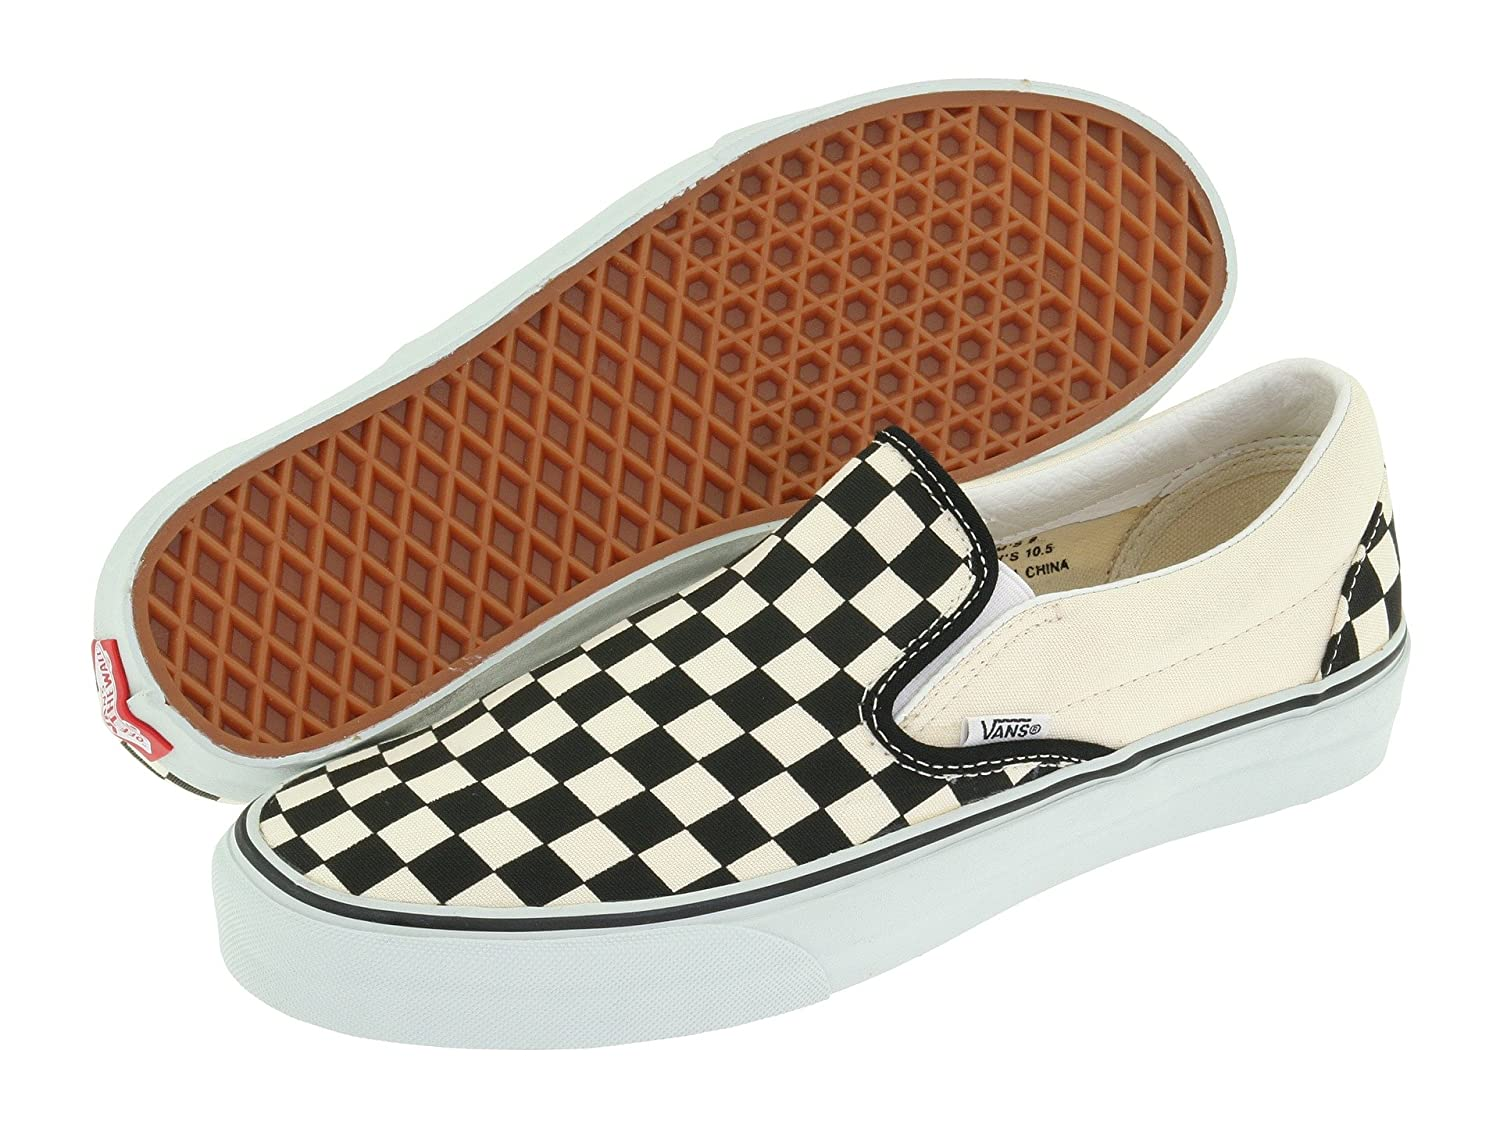 [バンズ] VANS スニーカー Classic Slip-on B073LP6SCY 8 B(M) US Women / 6.5 D(M) US Men|Checker Black/True White Checker Black/True White 8 B(M) US Women / 6.5 D(M) US Men